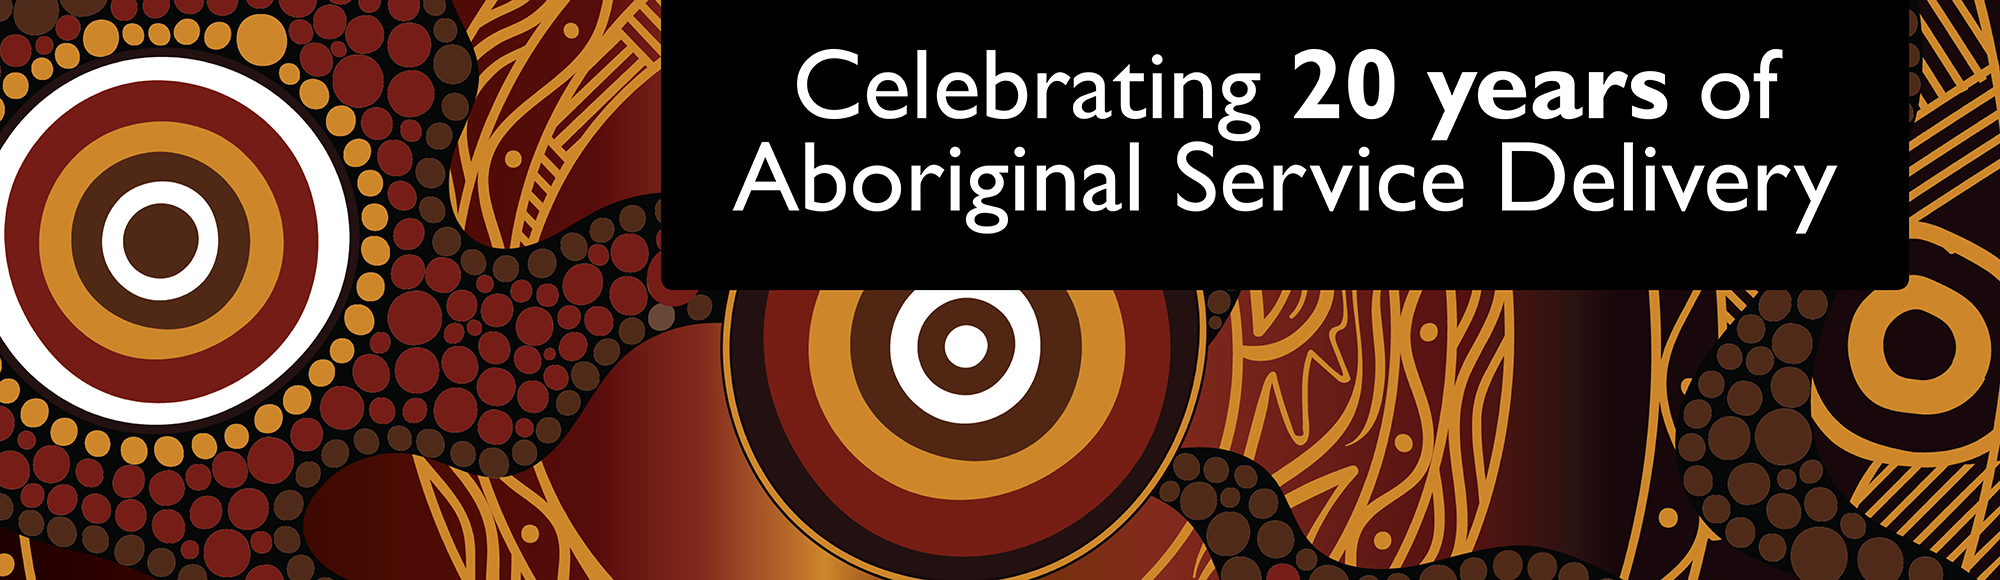 20 years of Aboriginal Service Delivery